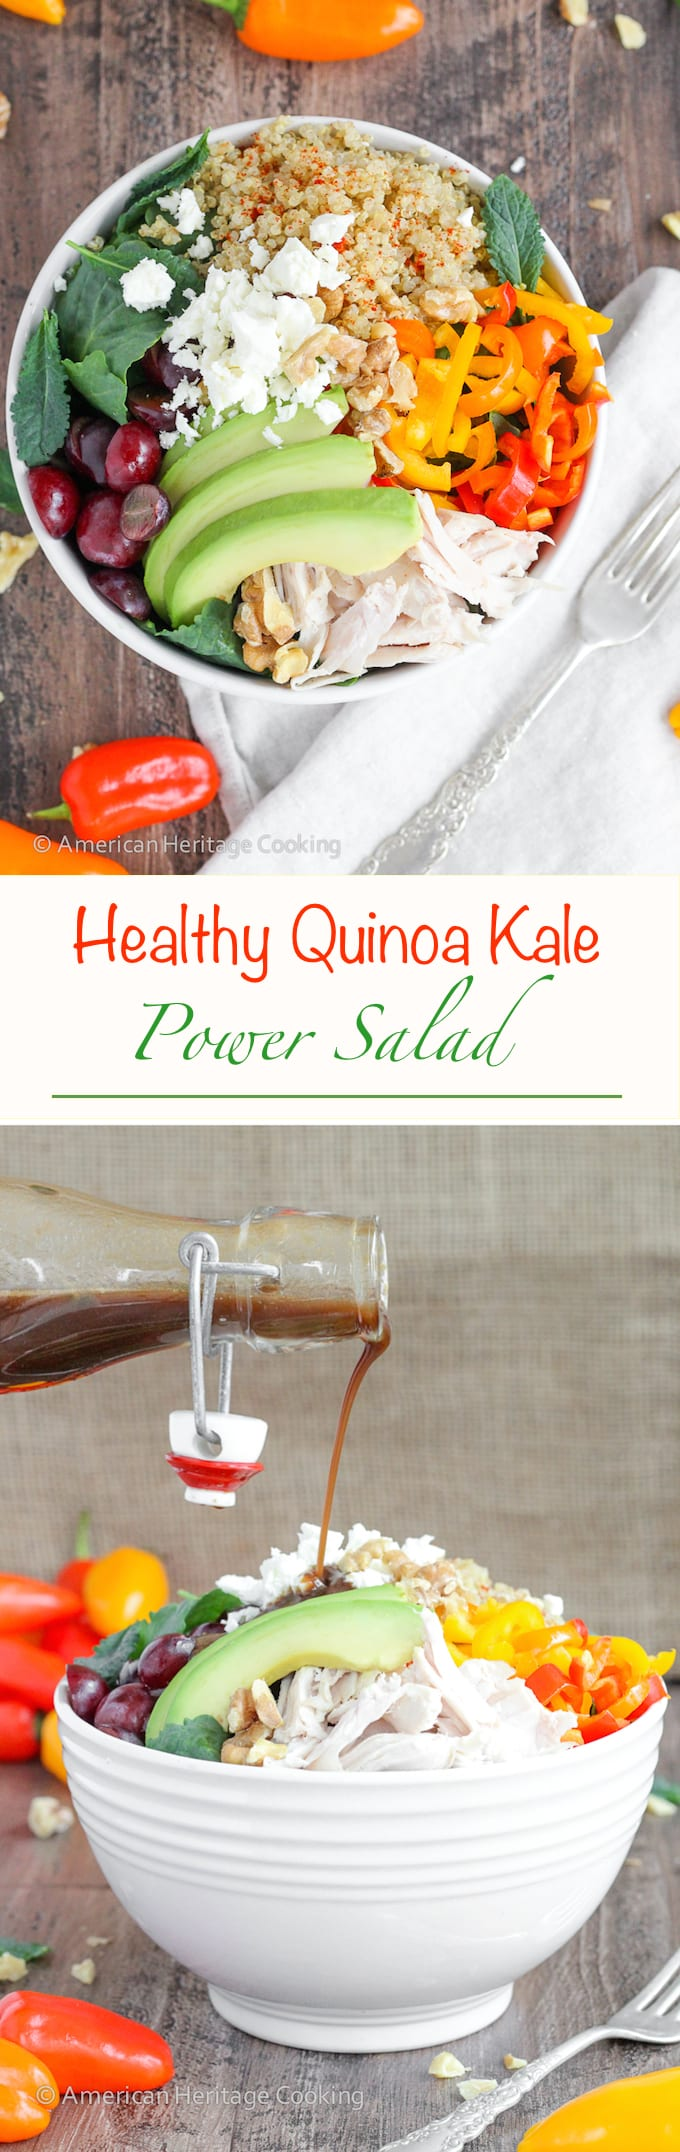 Quinoa kale power bowl american heritage cooking this quinoa kale power bowl is packed with vitamins minerals healthy fats and filling forumfinder Choice Image